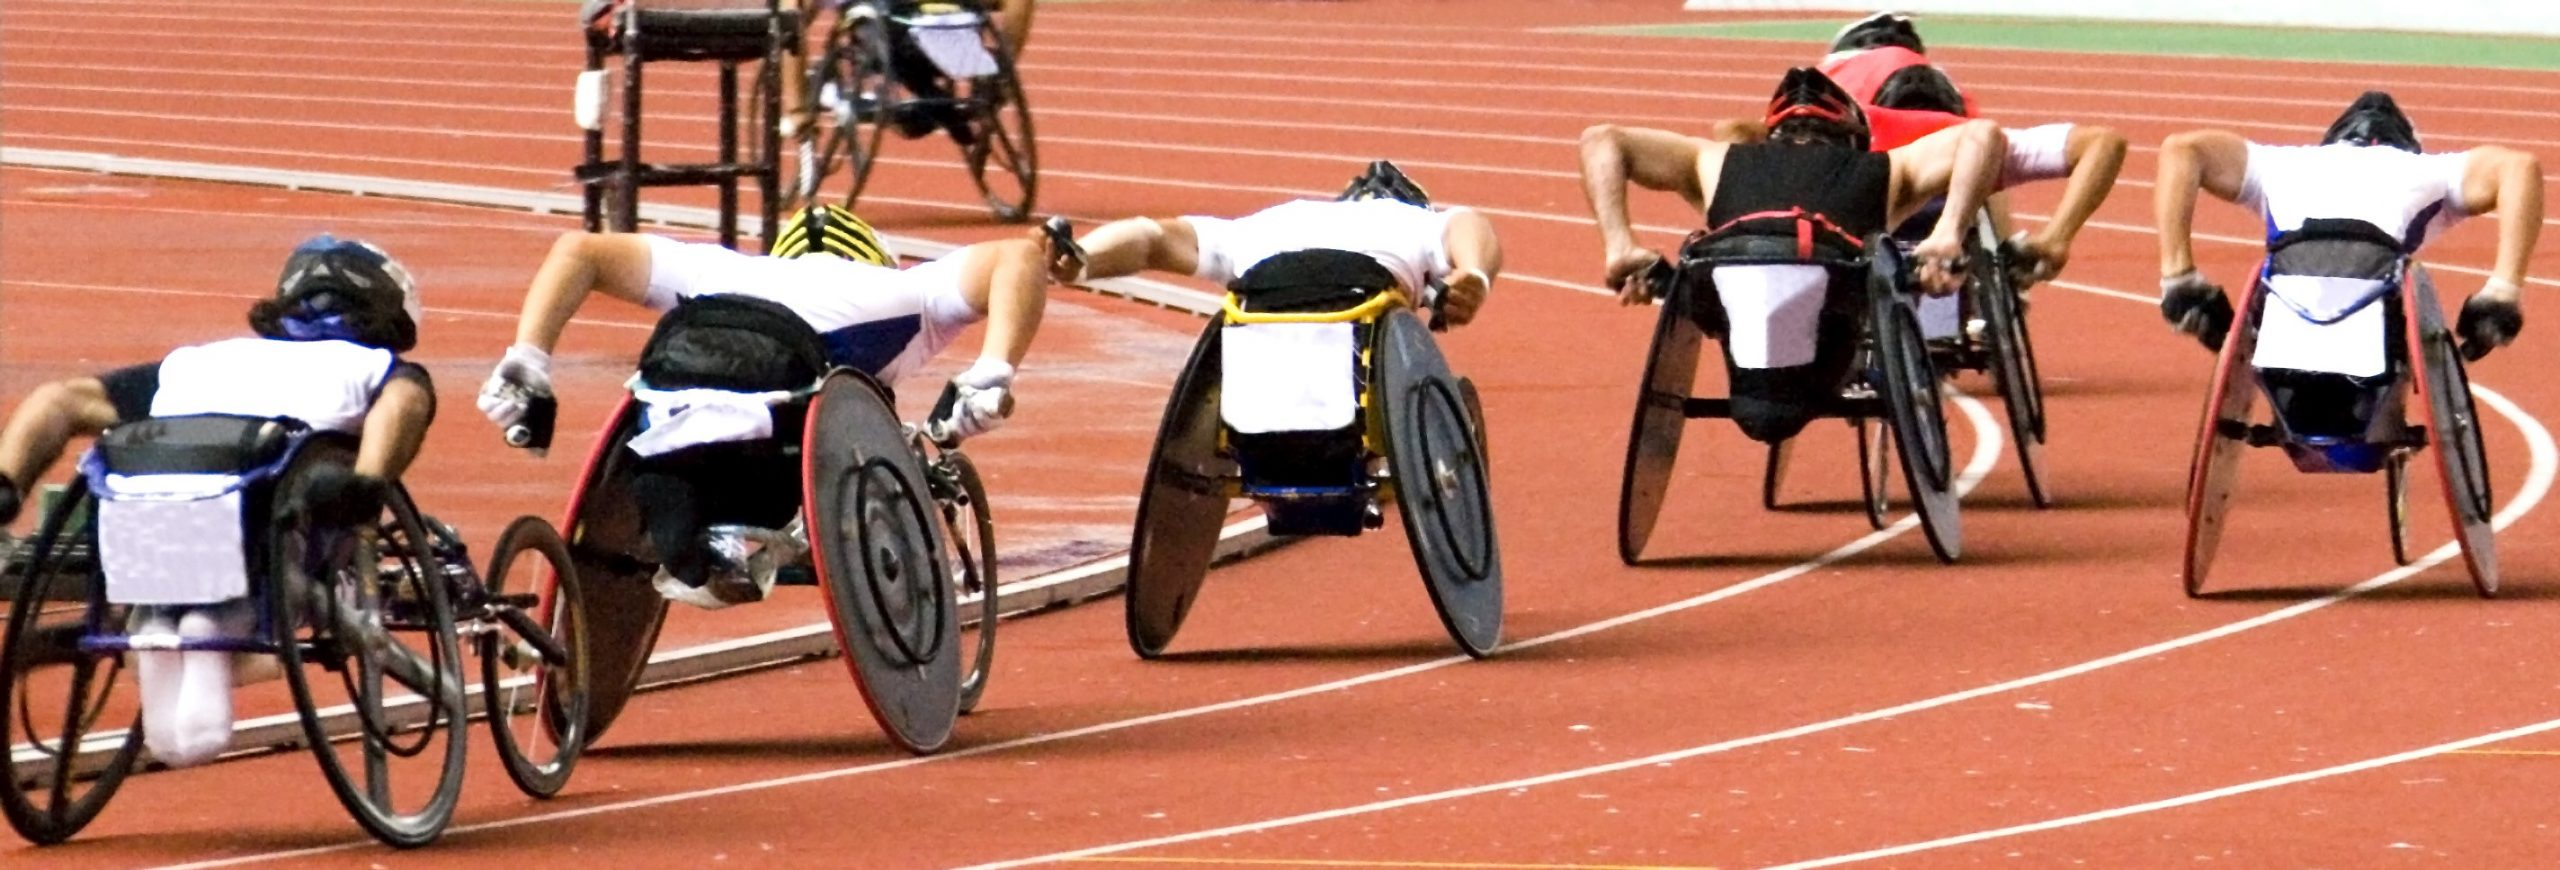 Wheelchair athletes competing on a track